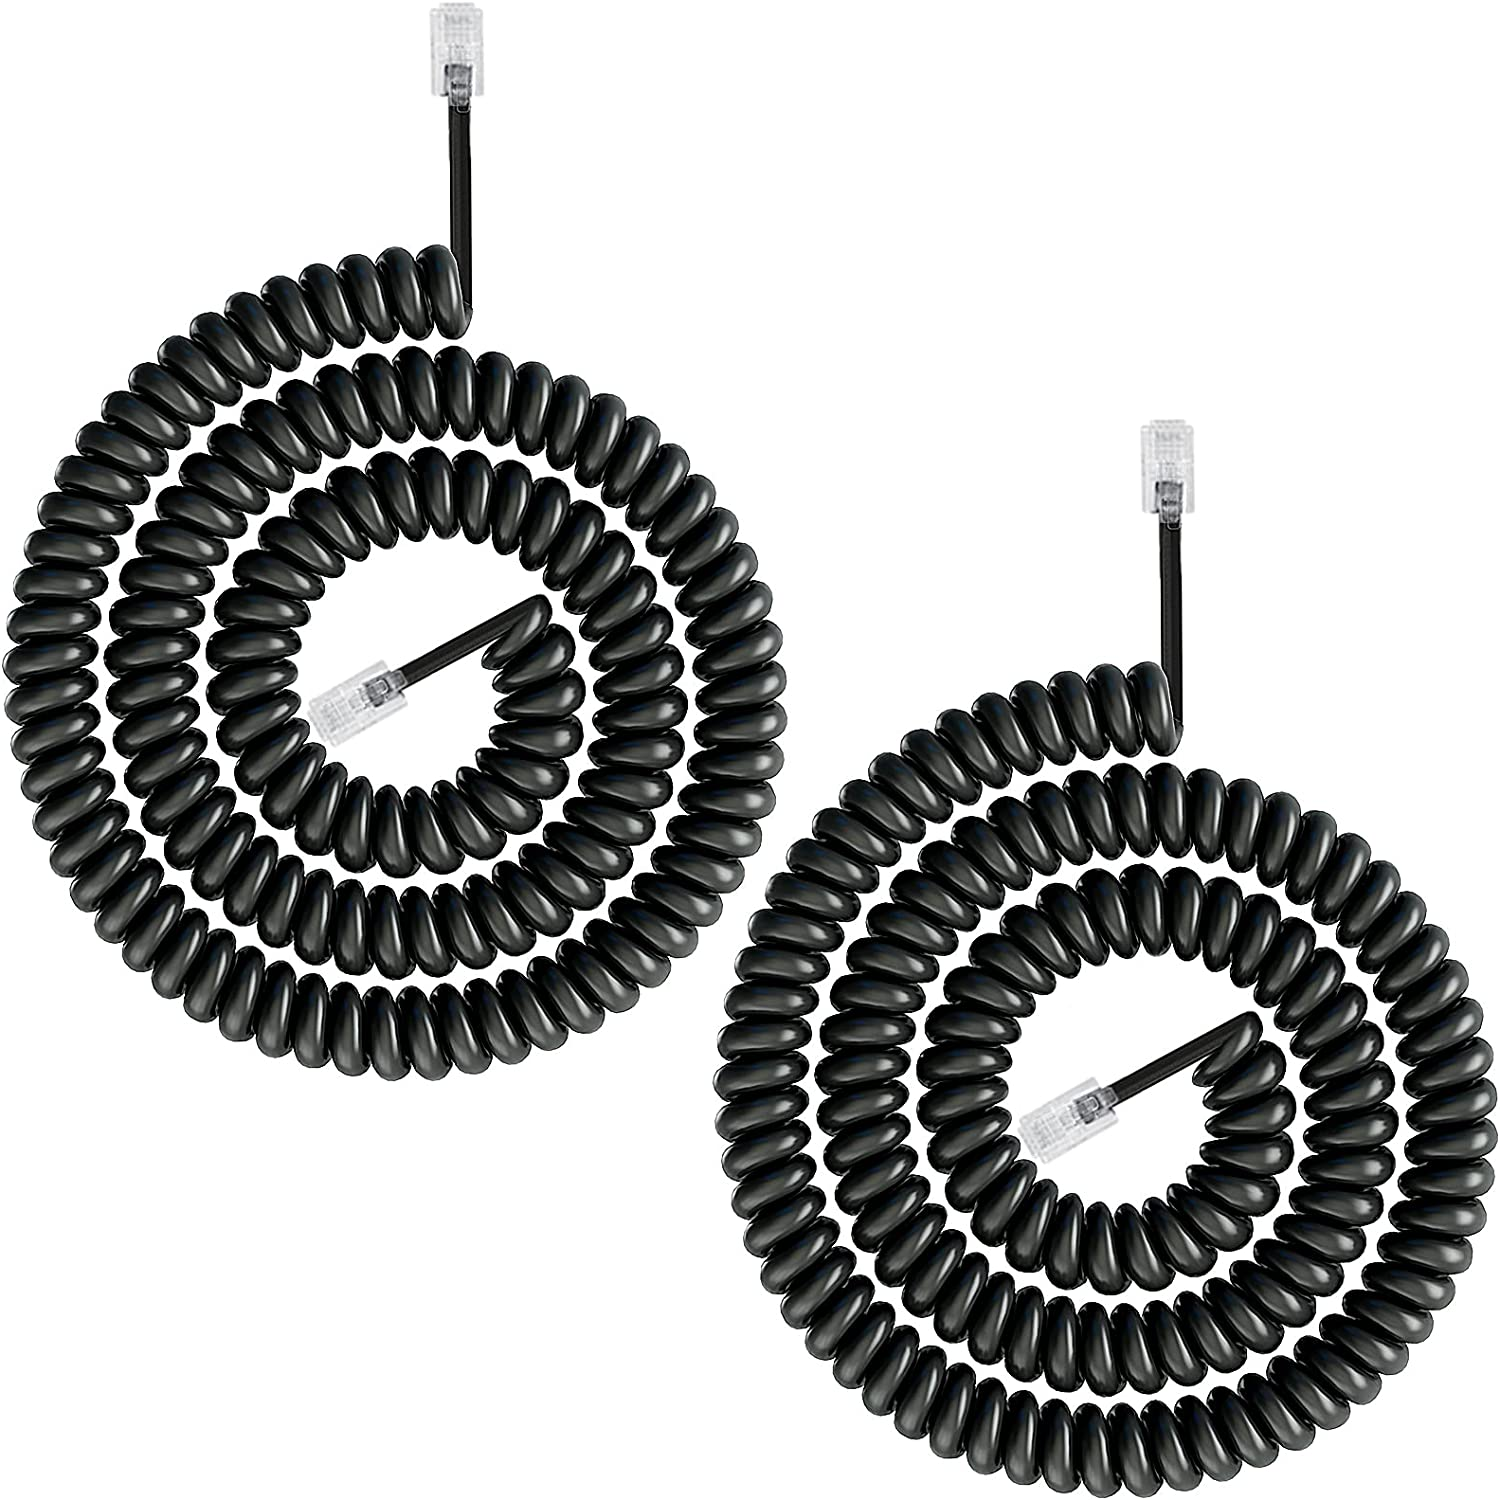 Telephone Phone Handset Cable Cord,Uvital Coiled Length 2.64 to 22 Feet Uncoiled Landline Phone Handset Cable Cord RJ9/RJ10/RJ22 4P4C(Black,2 PCS)